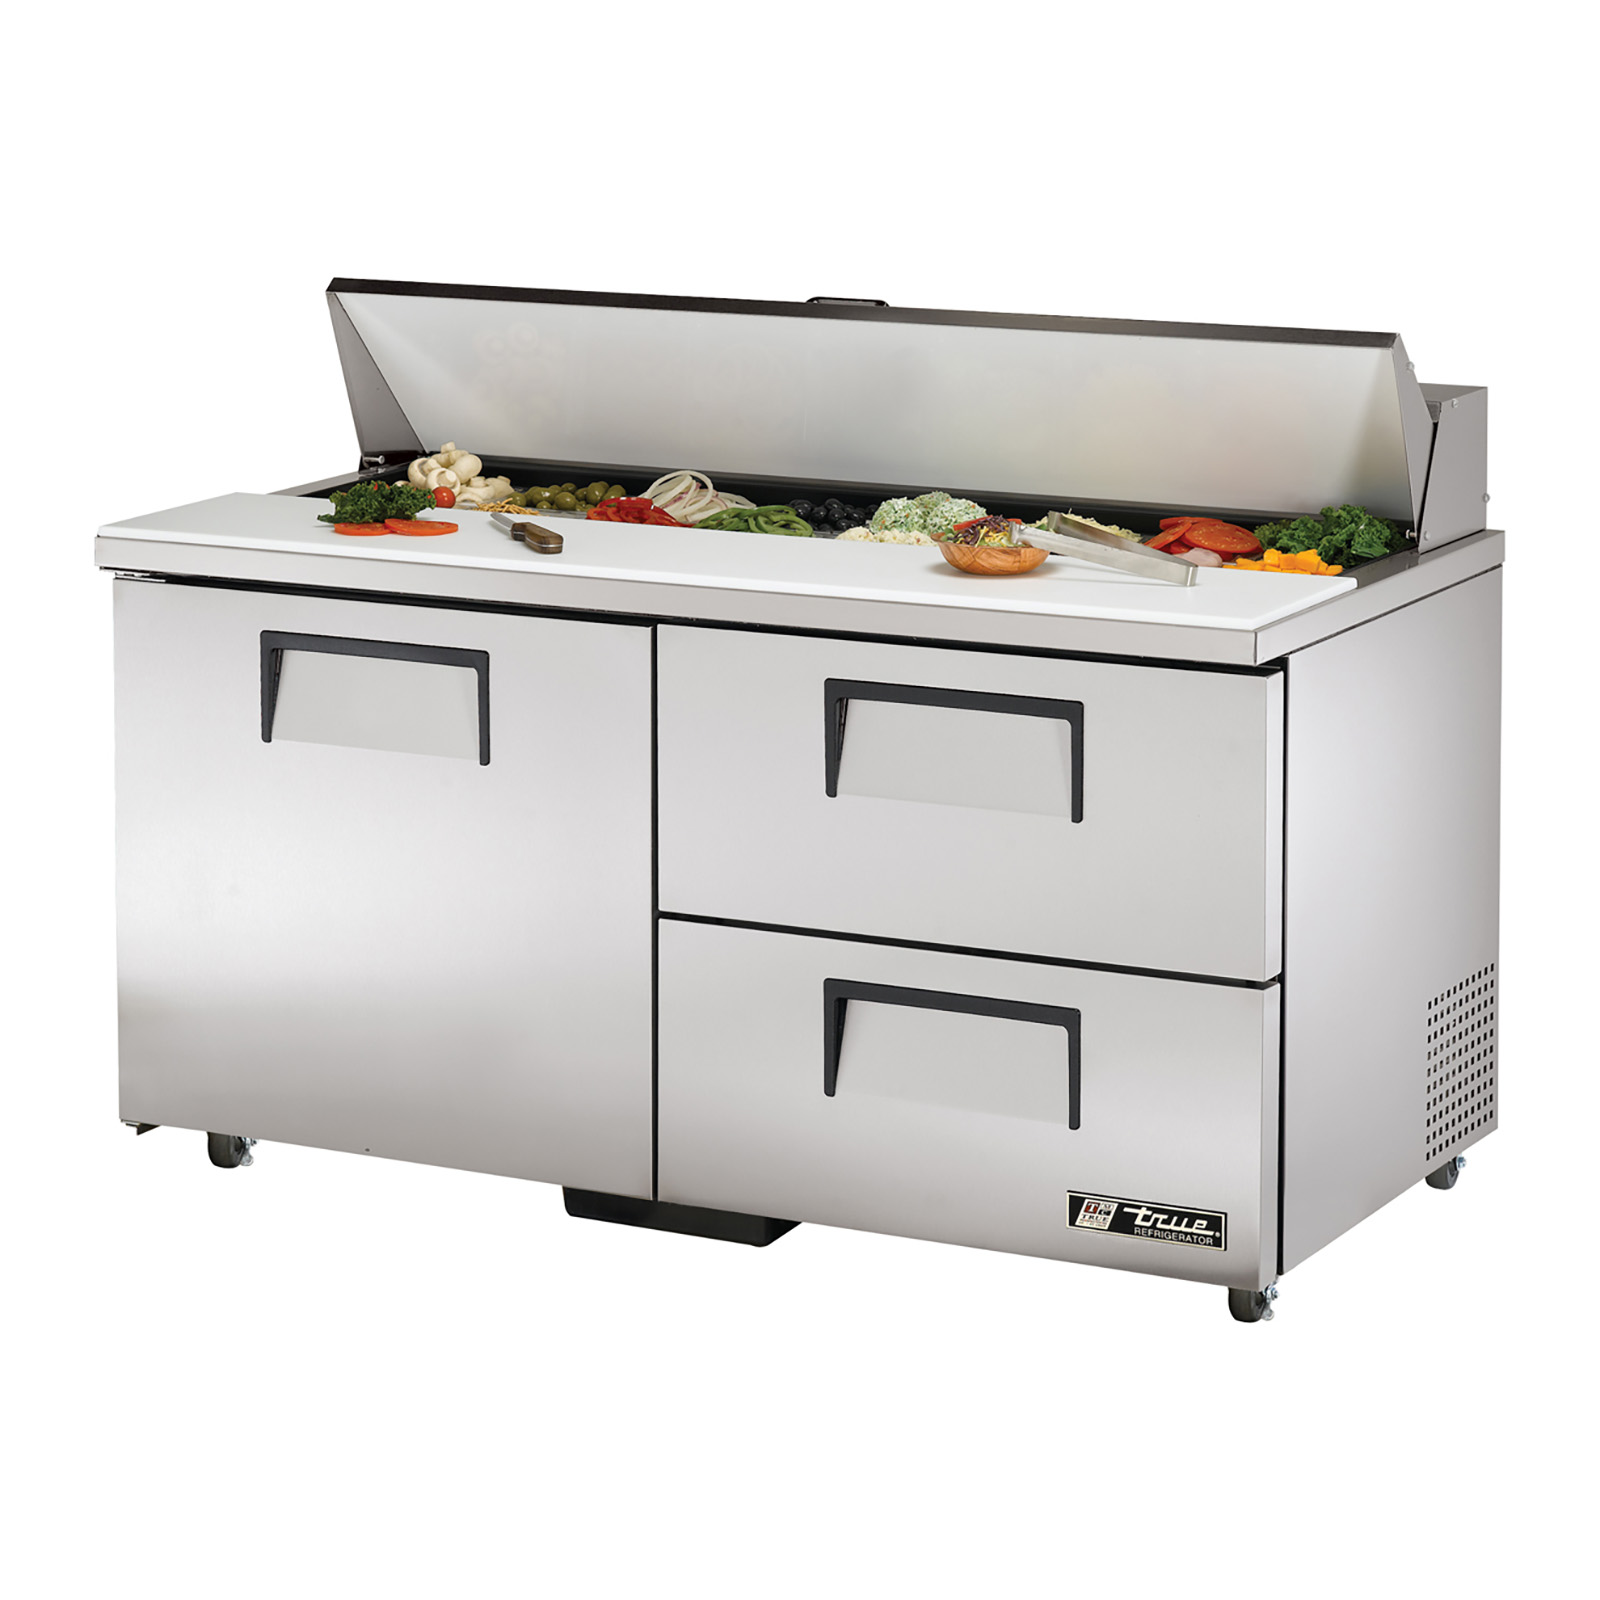 TSSU-60-16D-2-ADA True - ADA Compliant Sandwich/Salad Unit (16) 1/6 size (4